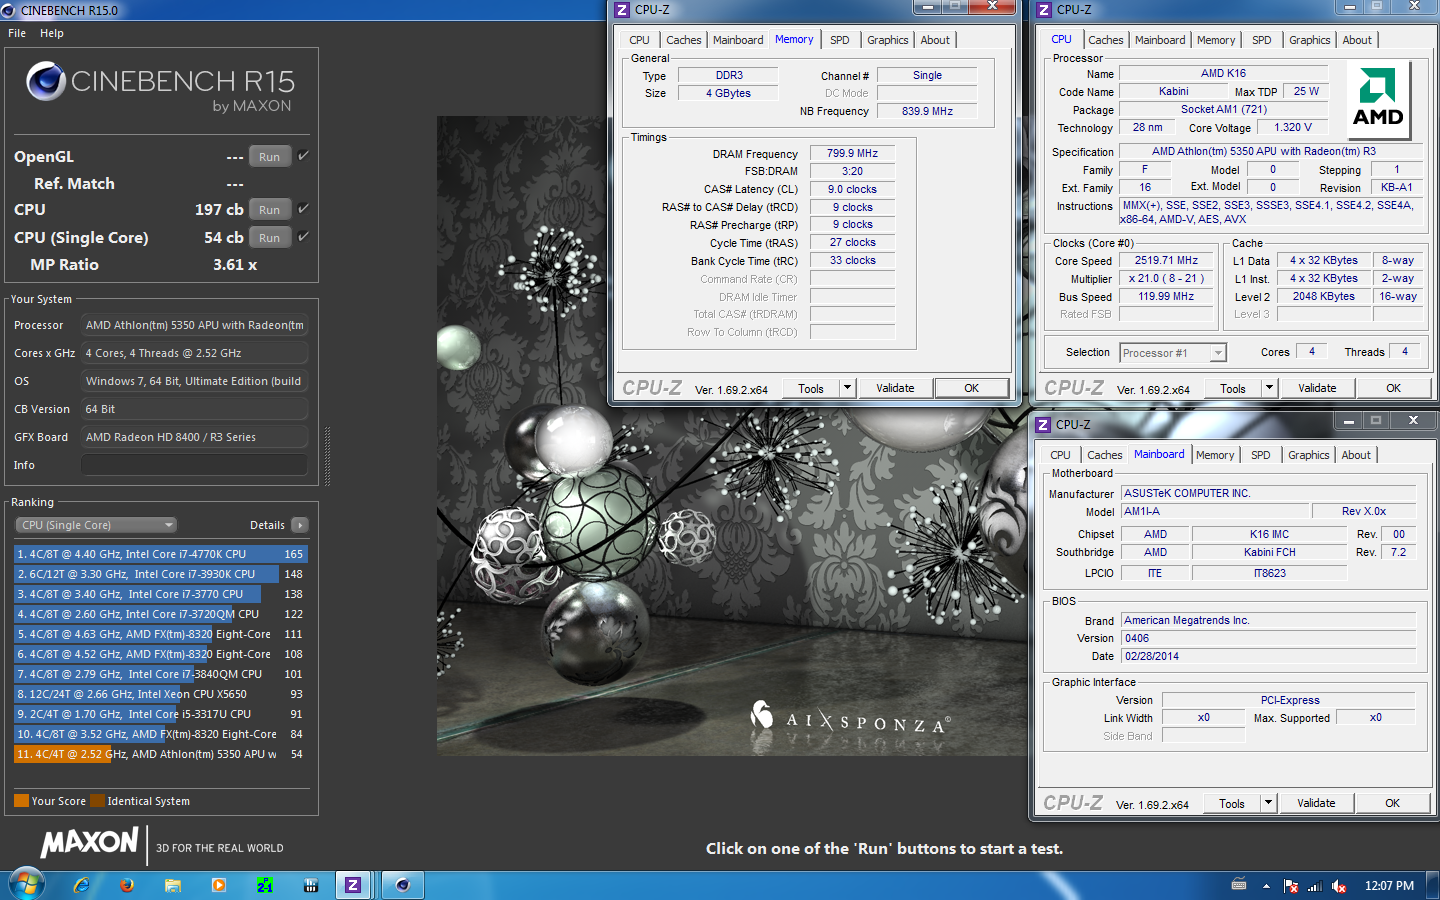 Amd Athlon 5350 With Radeon R3 overclock - an overclocking community - view single post